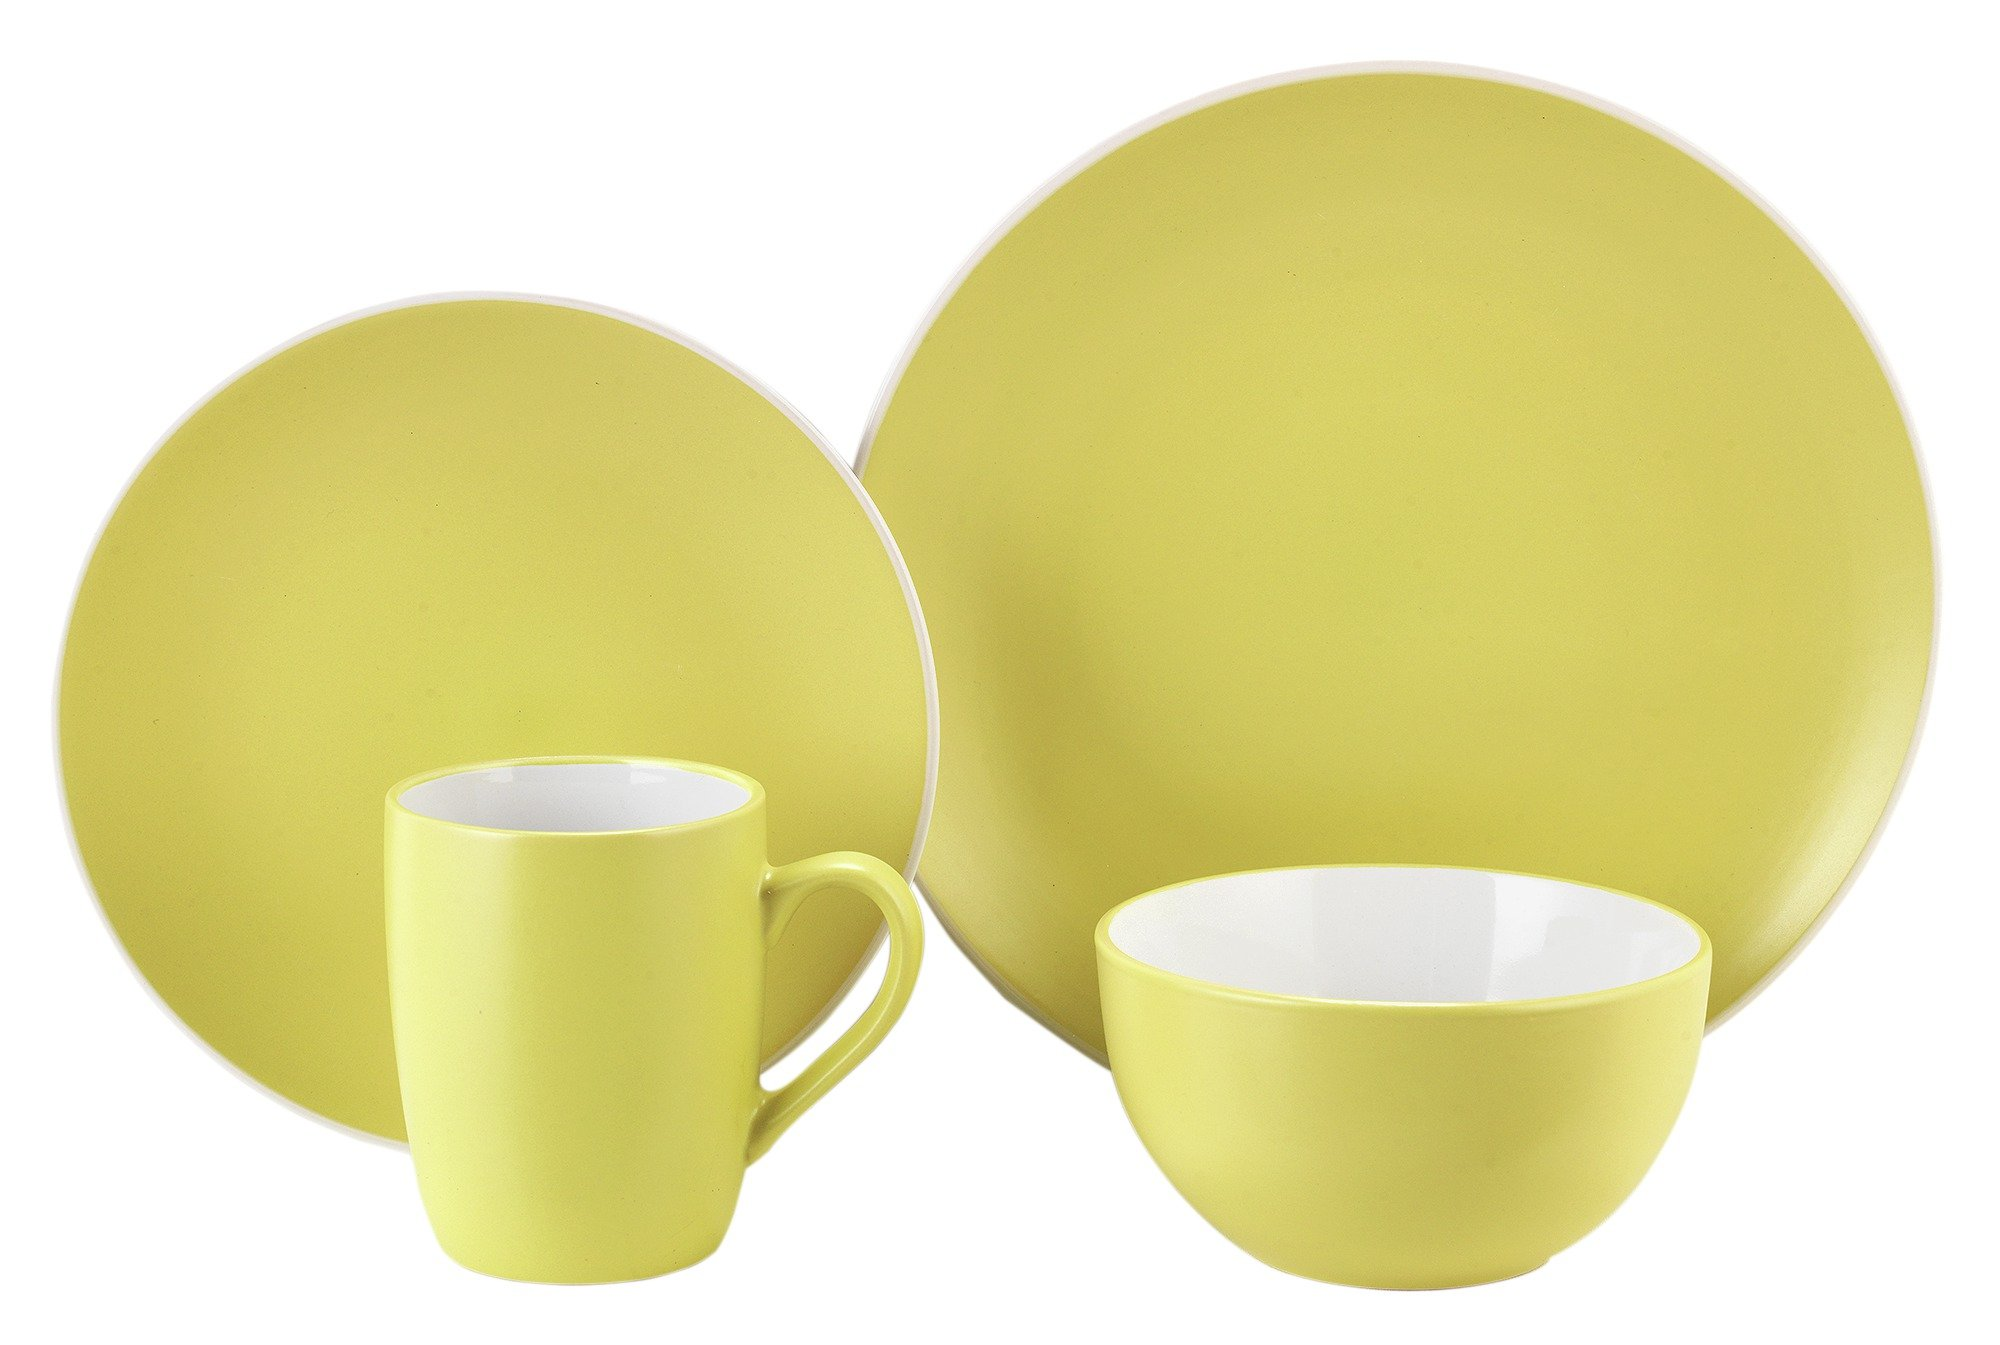 Image of ColourMatch 12 Piece Stoneware Dinner Set - Zest